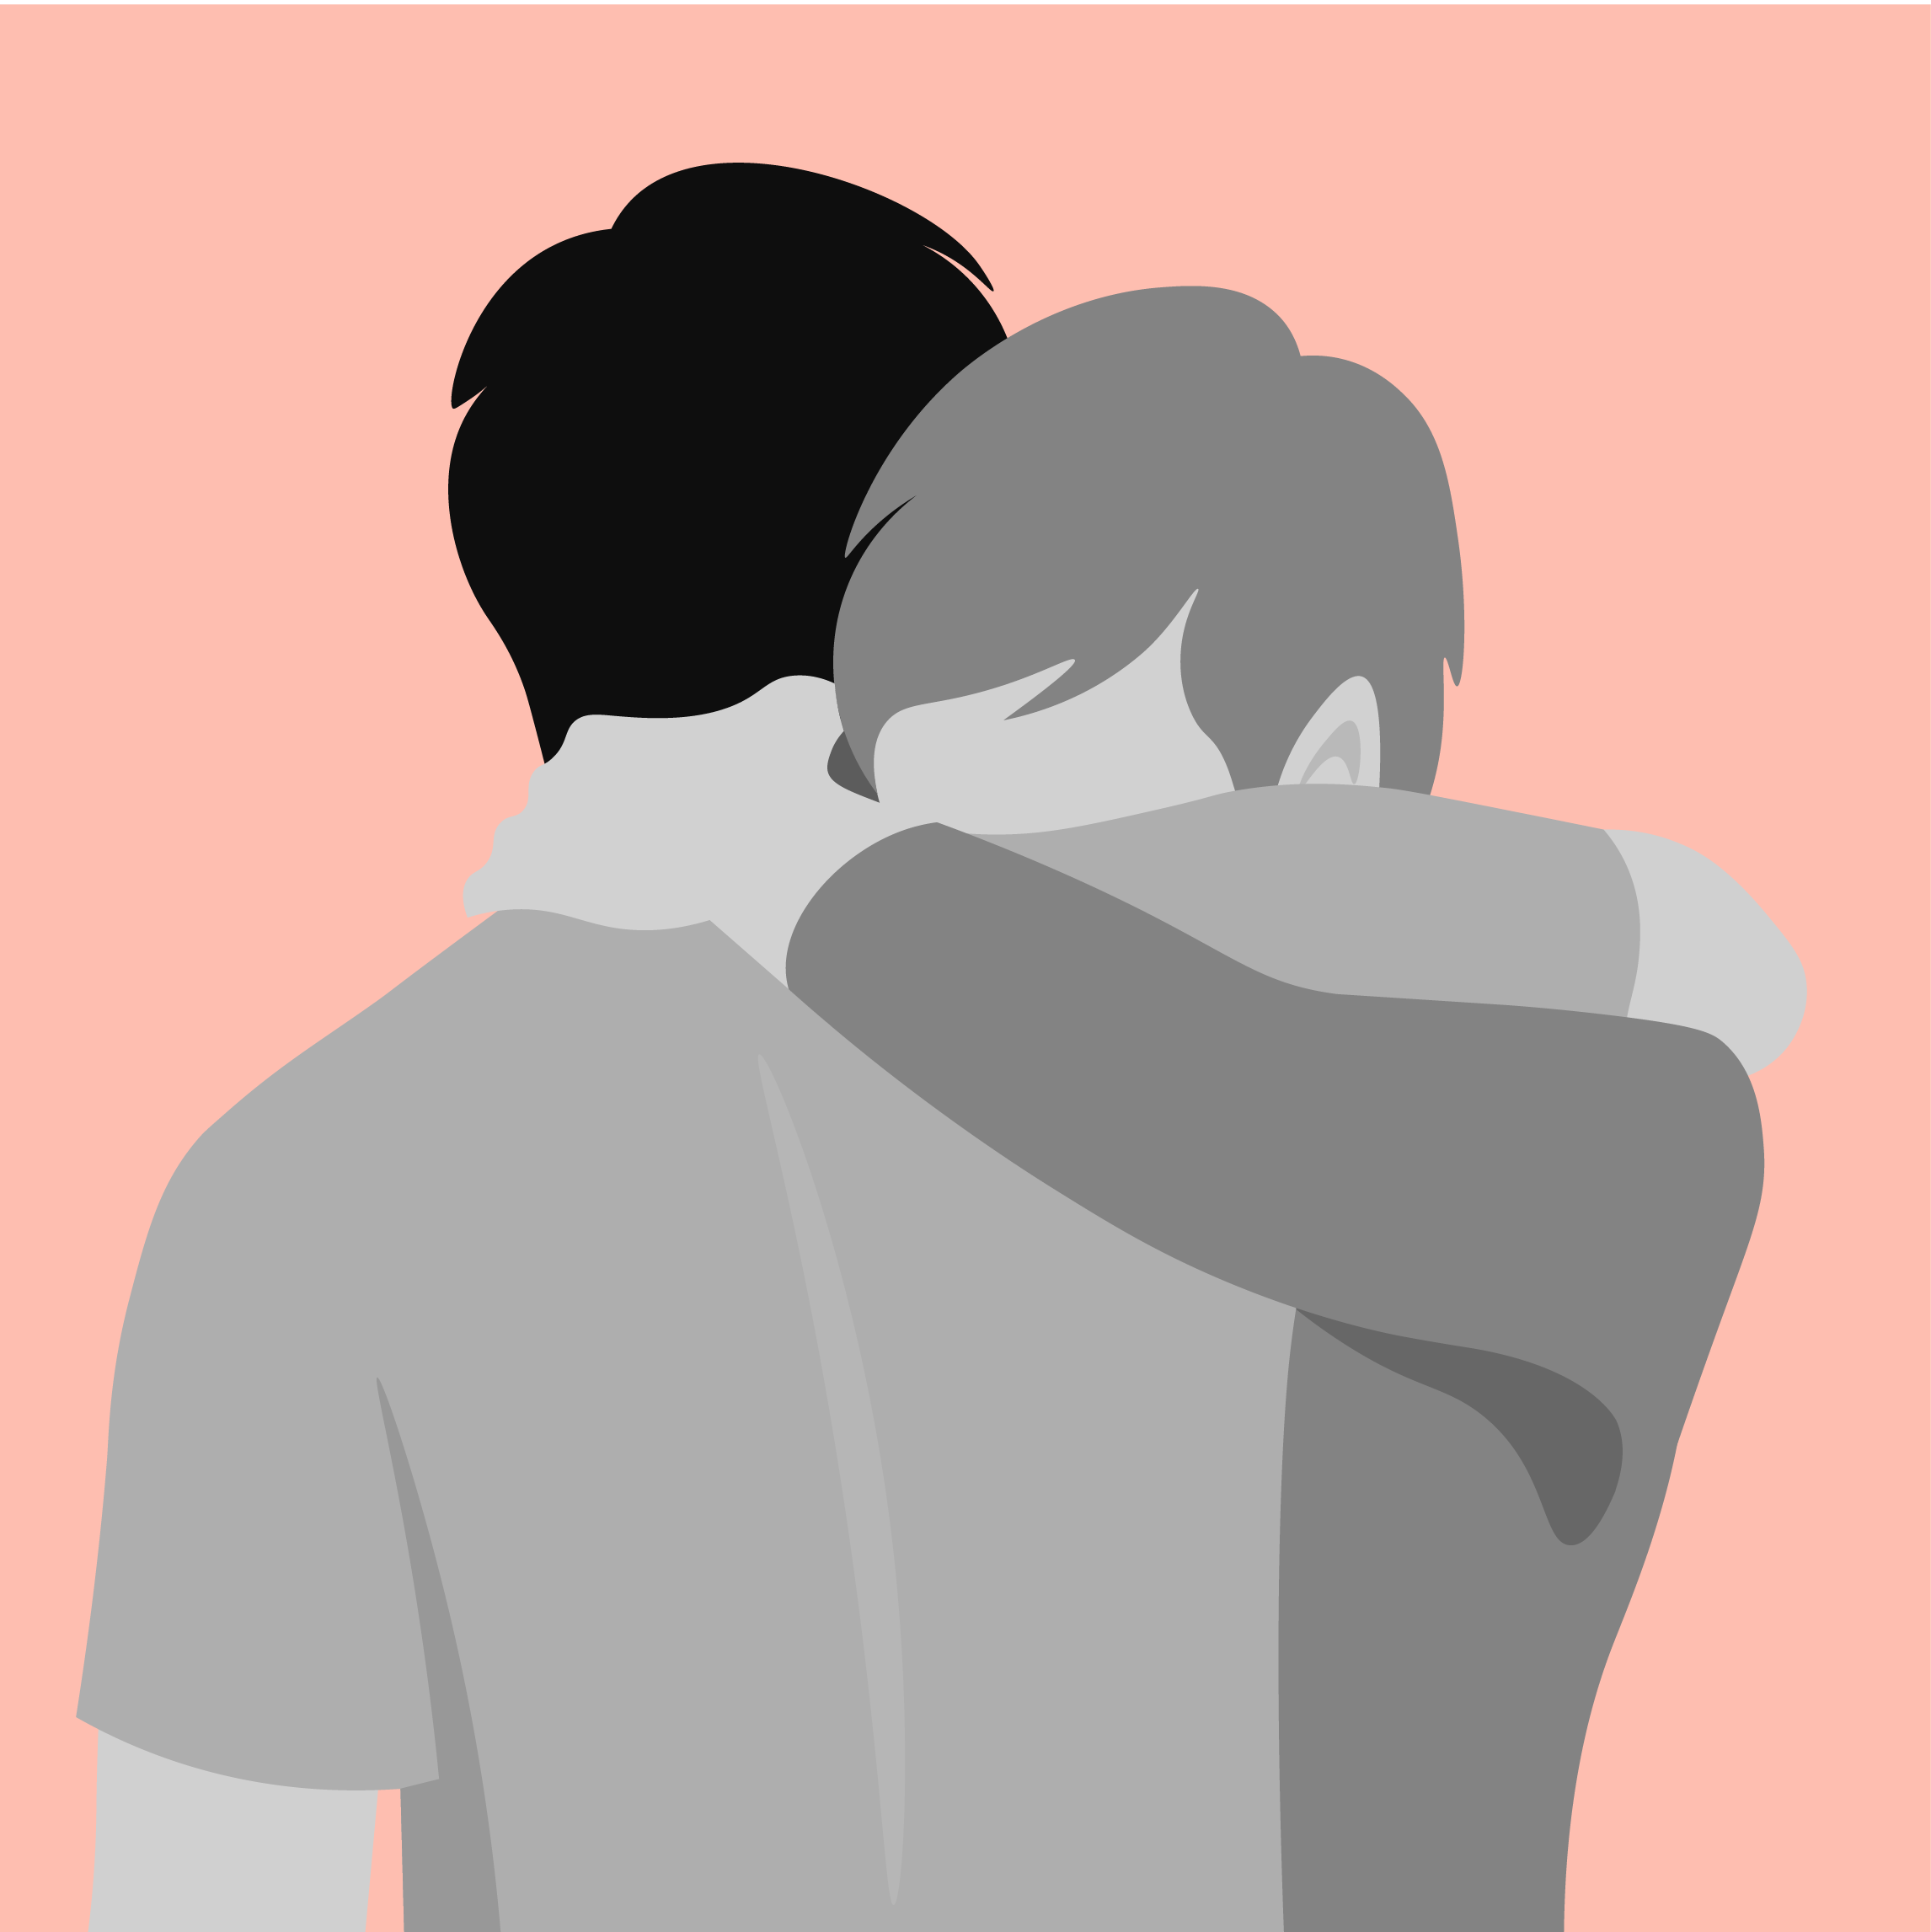 An illustration of two people embracing each other